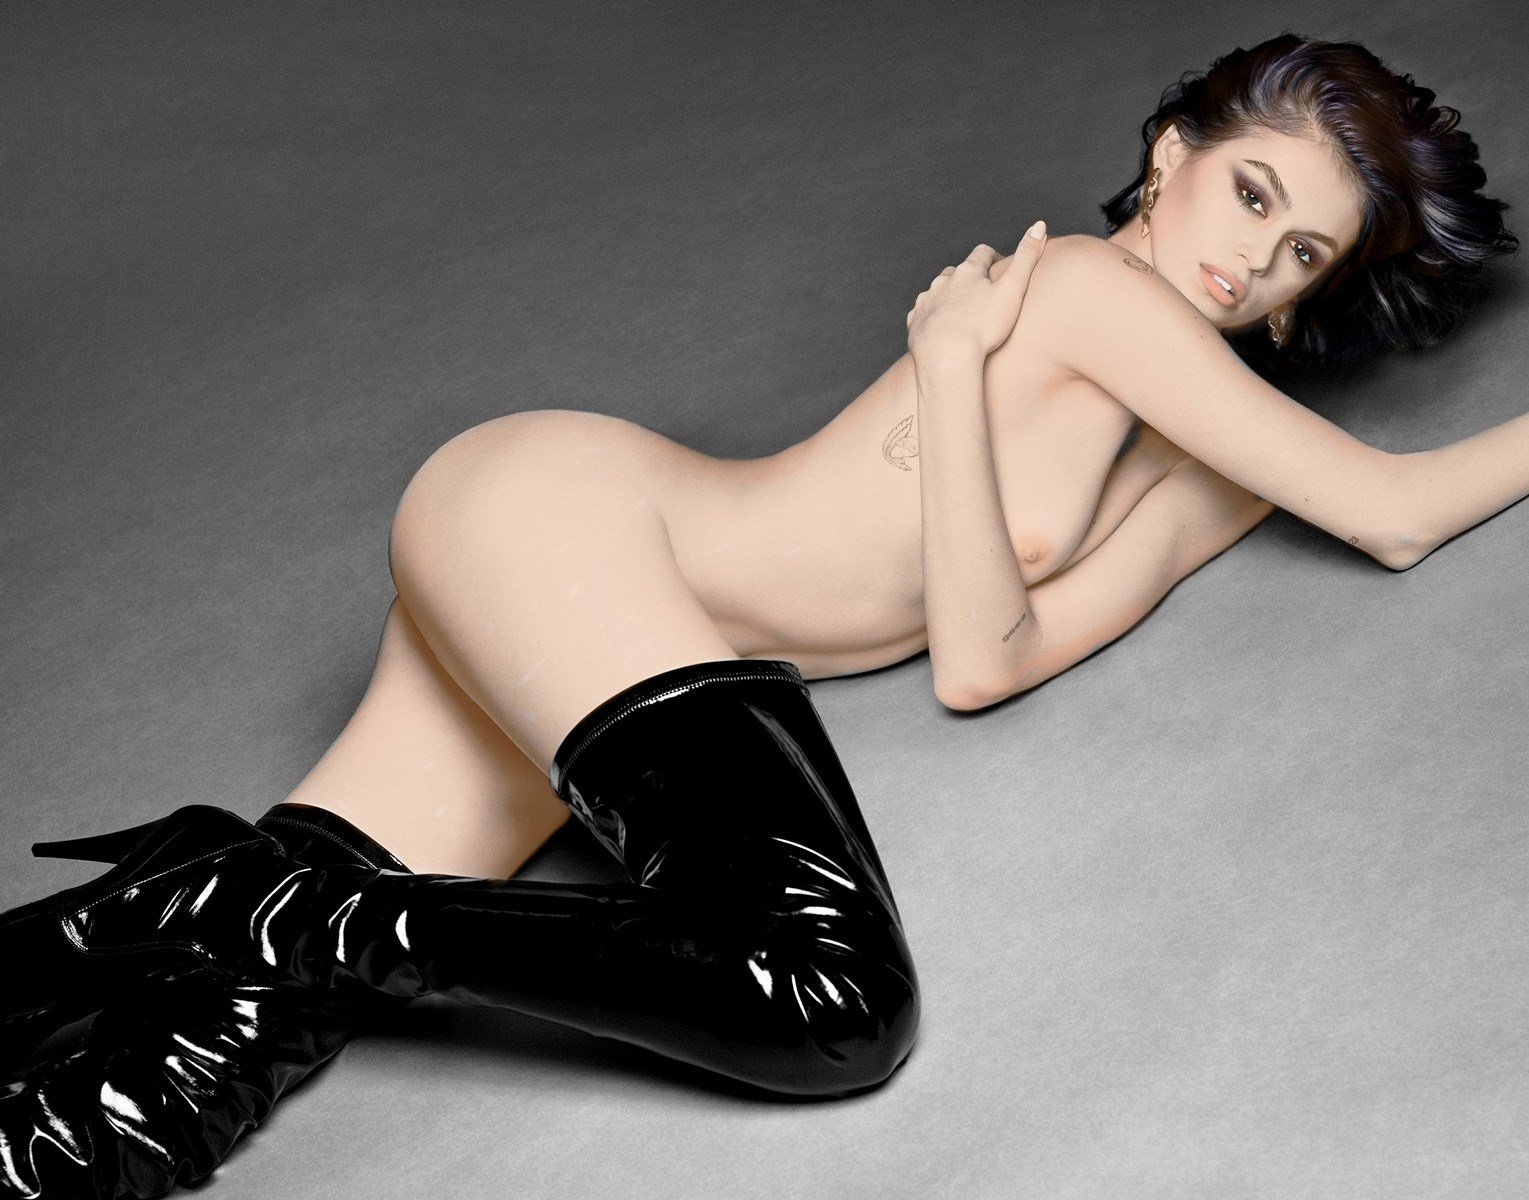 Kaia Gerber Does Her First Nude Photo Shoot